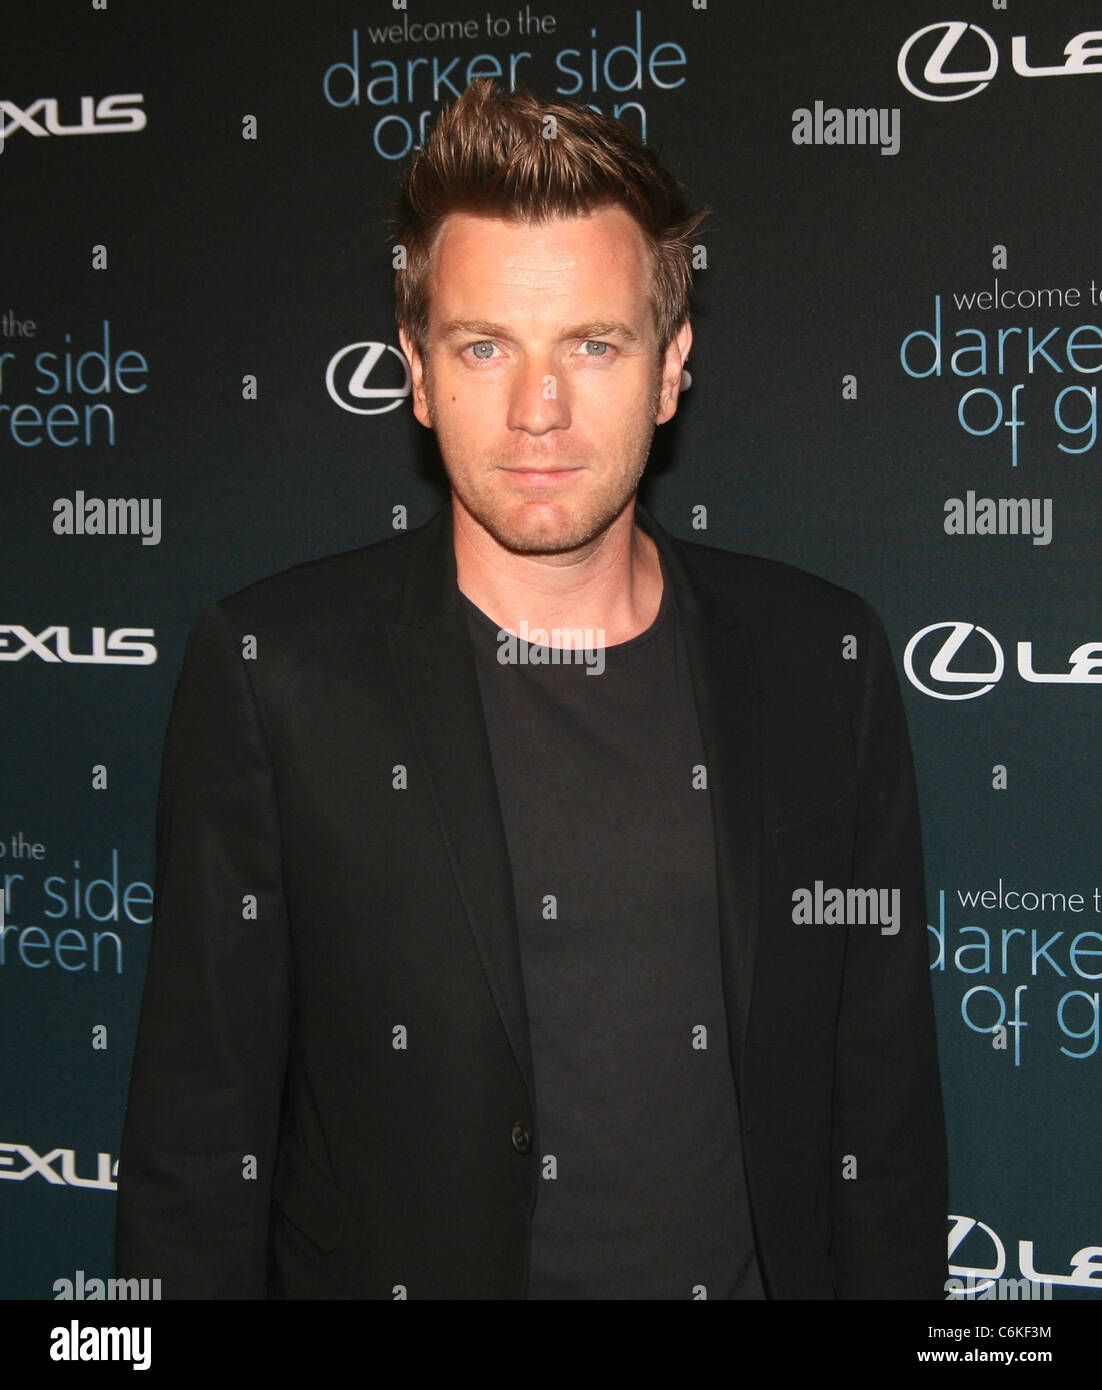 Ewan Mcgregor At The Darker Side Of Green Debate Series At The Bowery Stock Photo Alamy